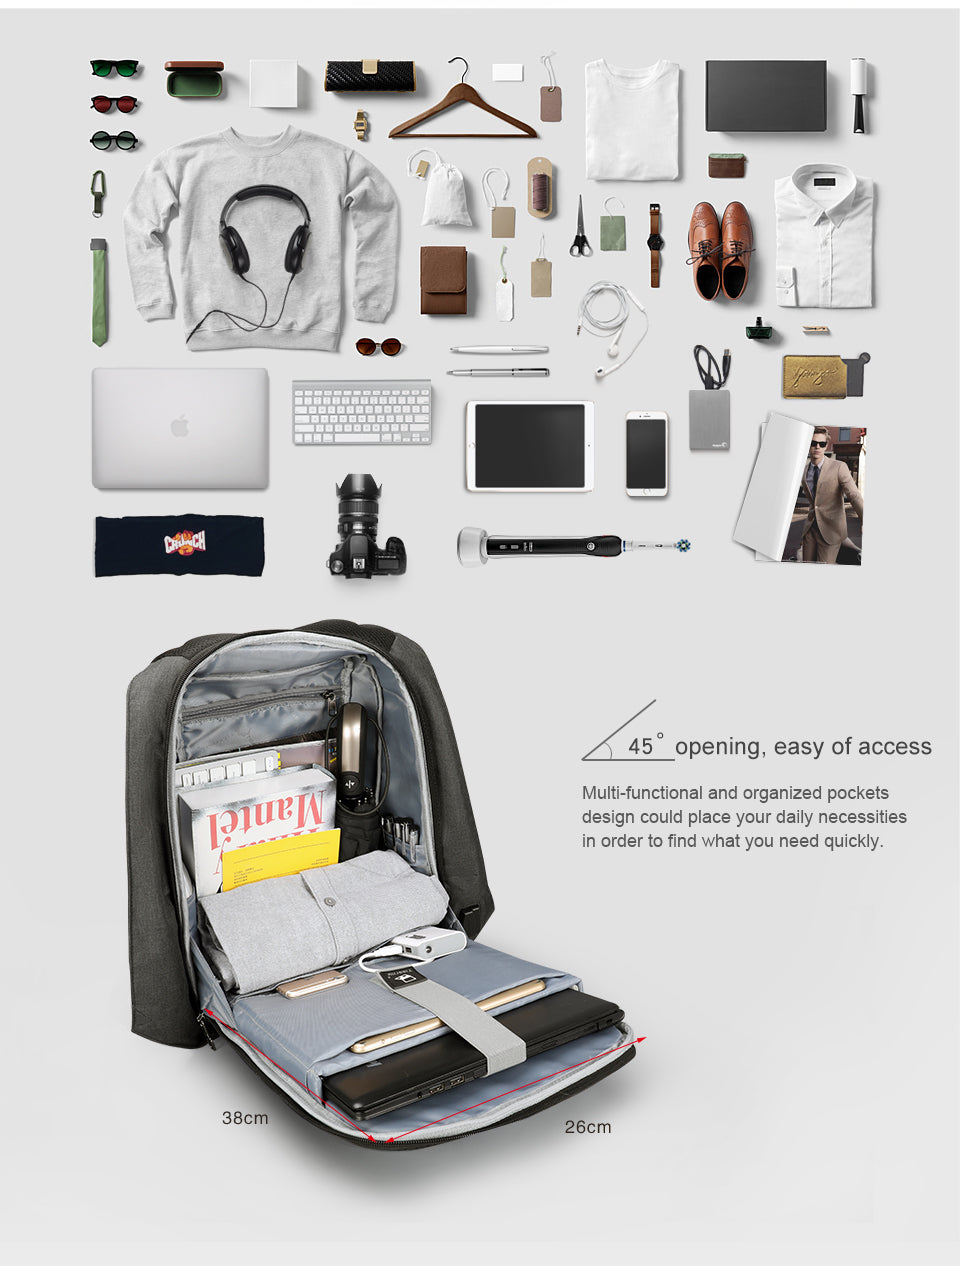 More Storage system backpack | Smart gadget